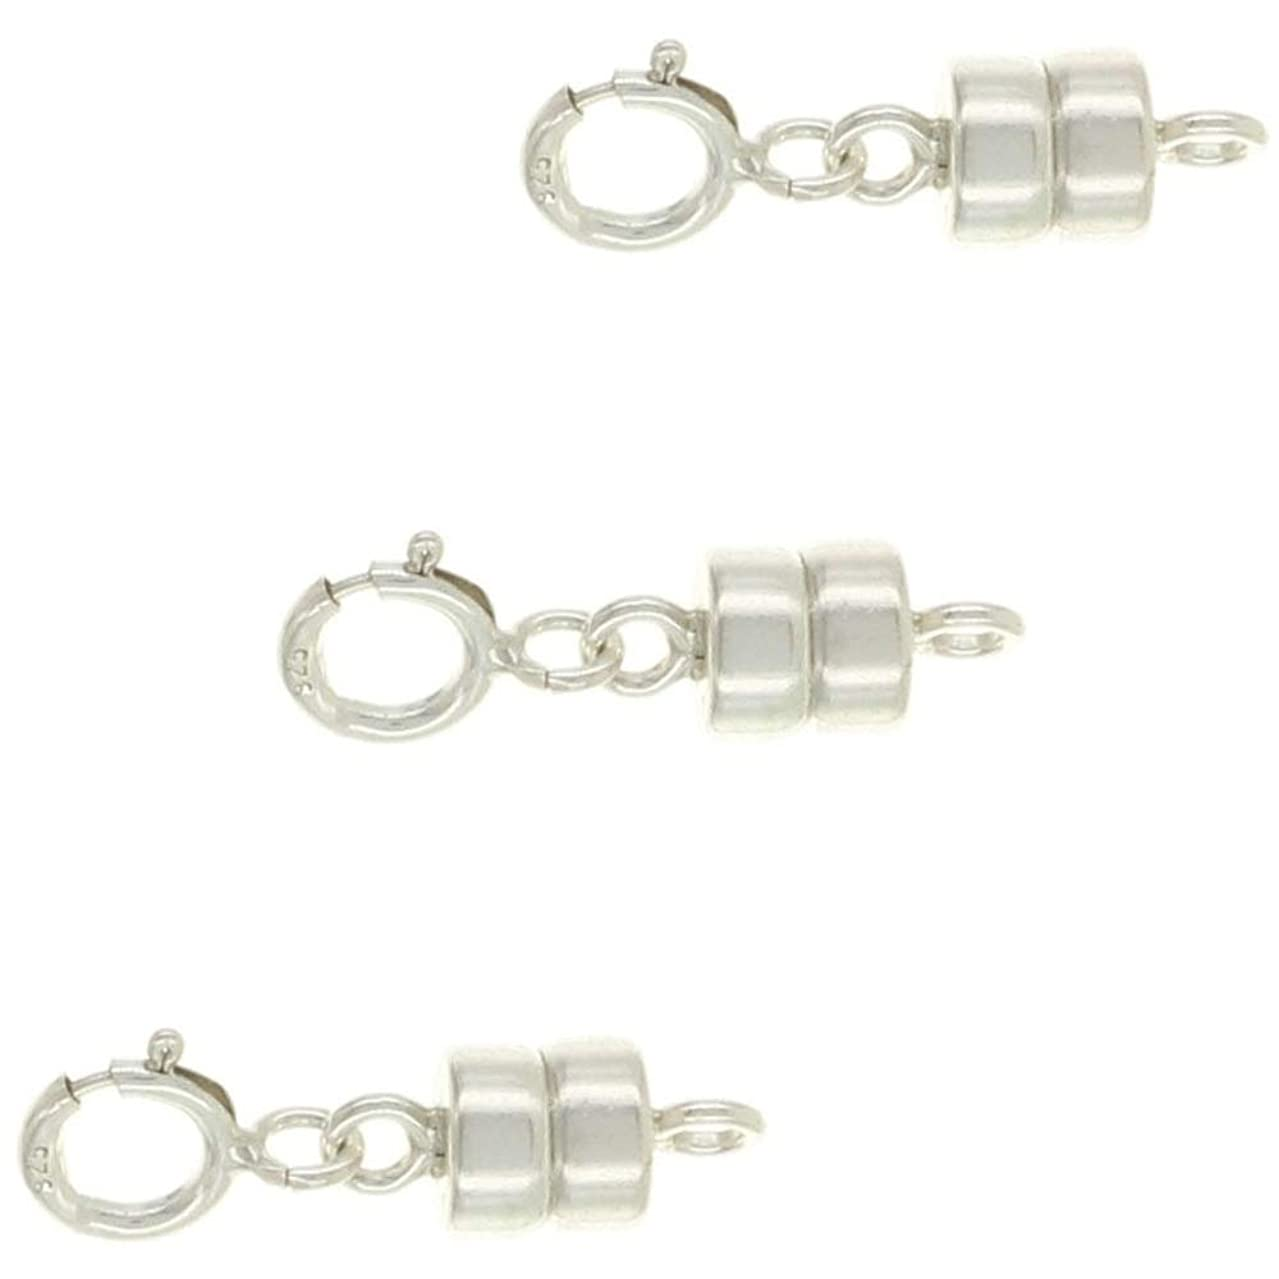 Fiore Sterling Silver 4.5 mm Magnetic Clasp Converter for Jewelry and Necklaces | Made in USA [3 Pack]